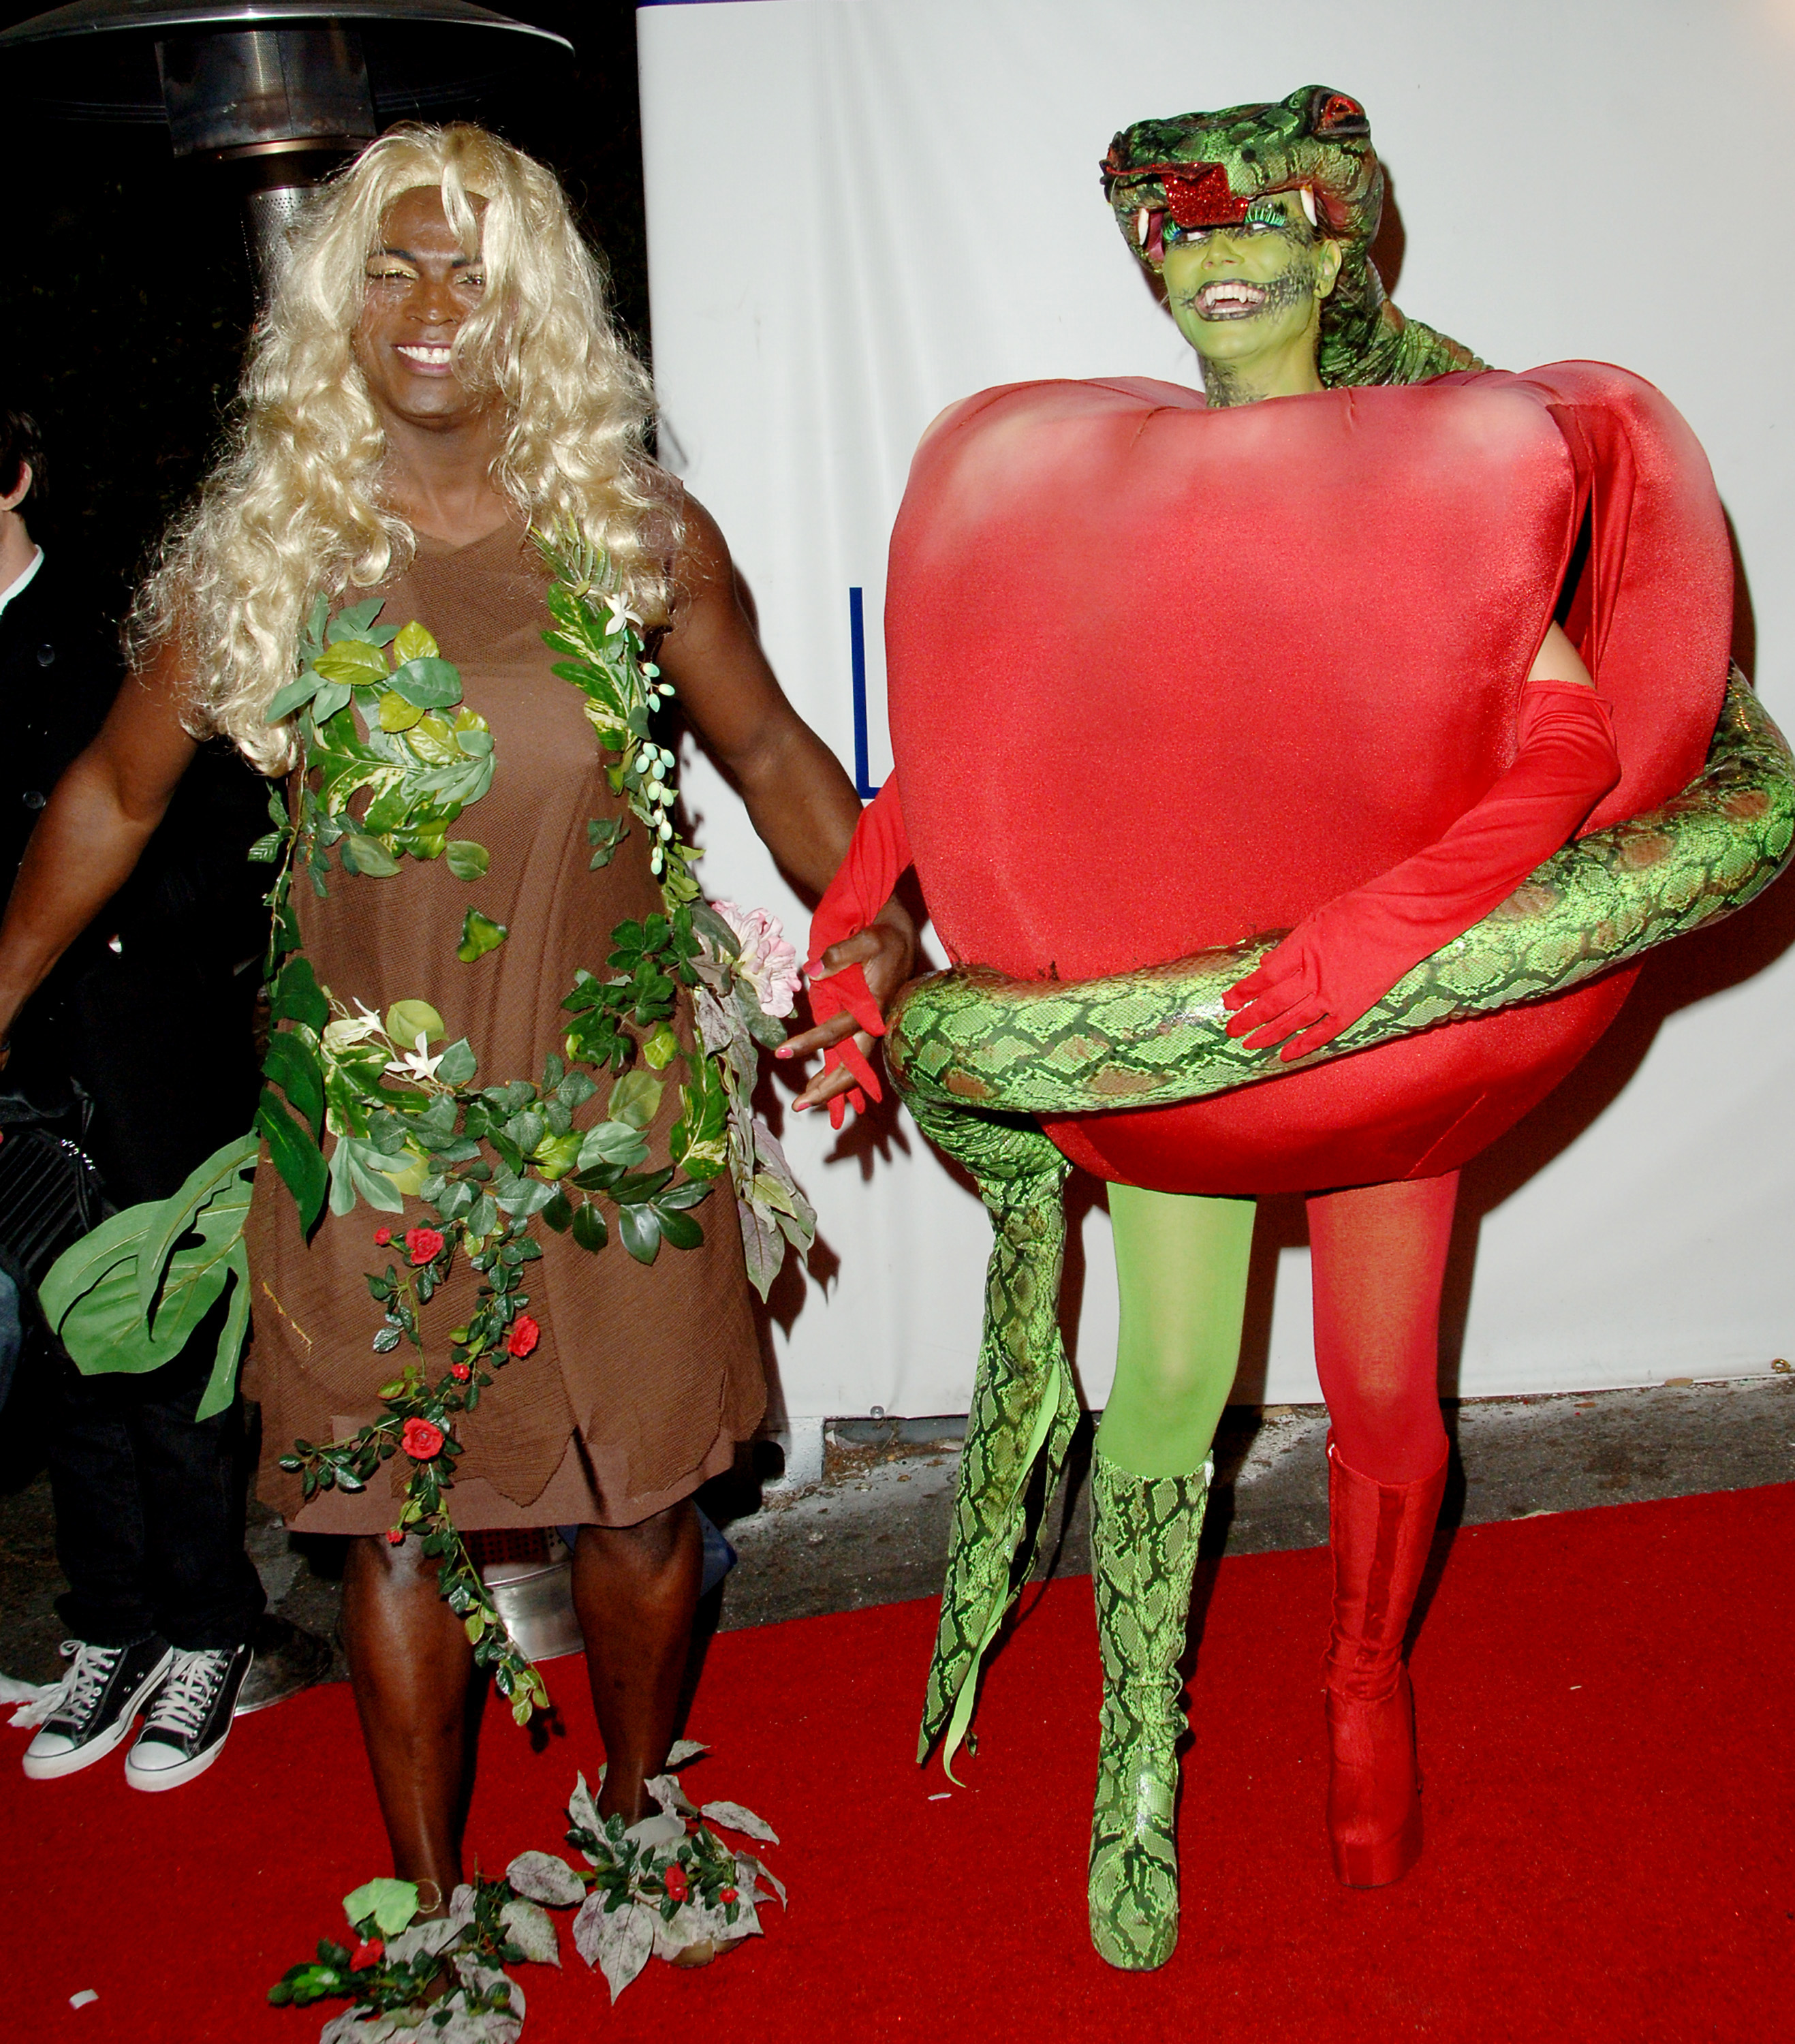 Best 'Relationship Goals' Costume: While they were still married in 2006, Seal and Klum came as Eve (Seal) and the serpent with the fruit from the tree of knowledge — gender-bending and allegorical!